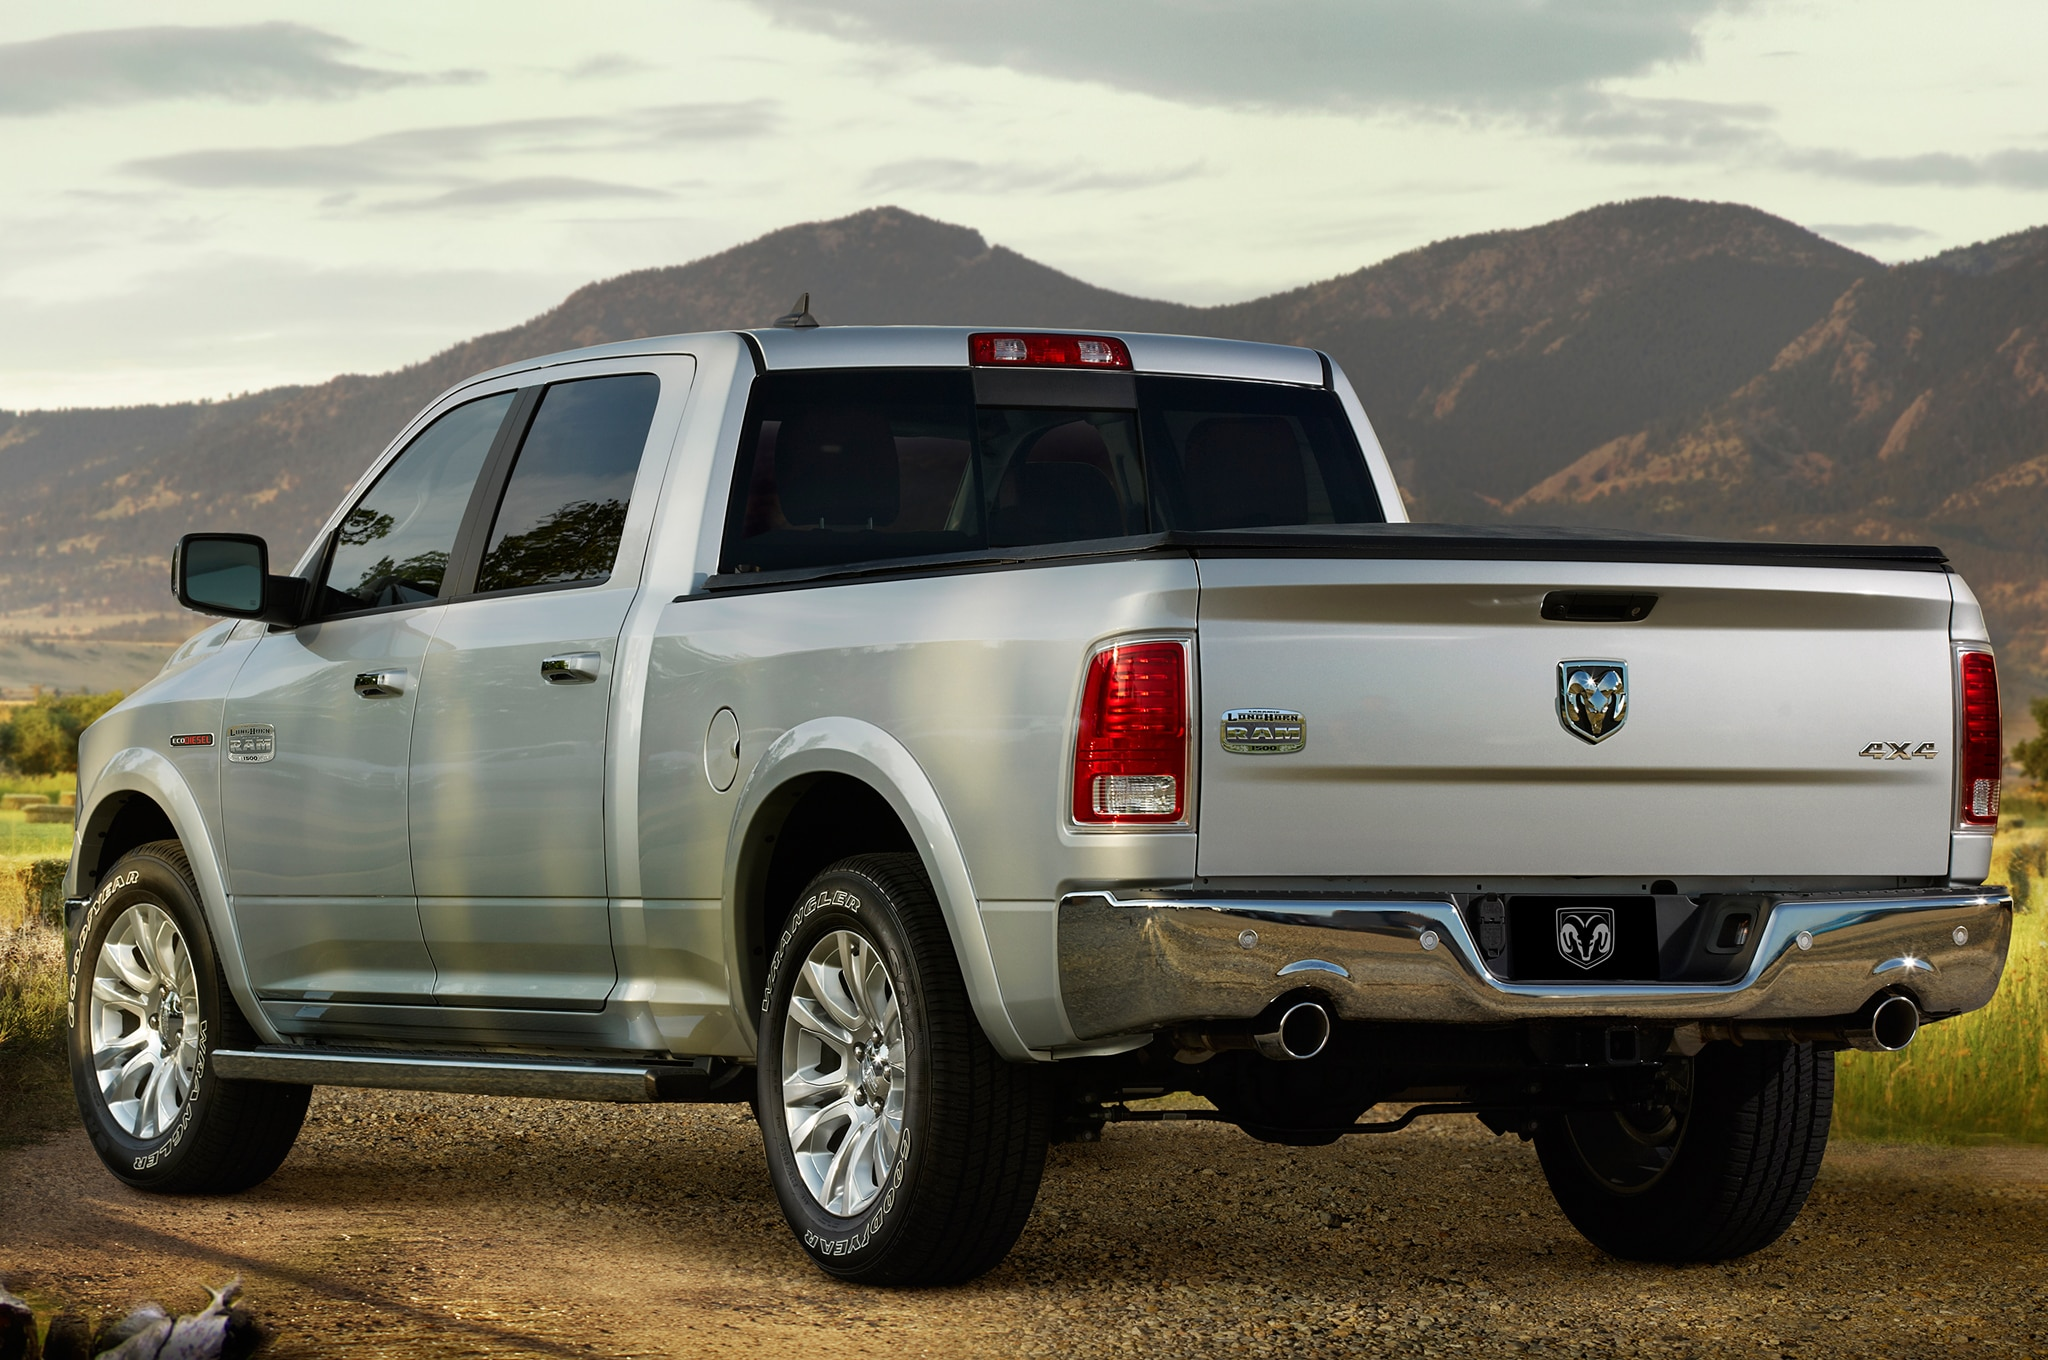 Ram 1500 Ecodiesel Review >> 2015 Ram 1500 Ecodiesel Increasing to 20 Percent of Production Mix